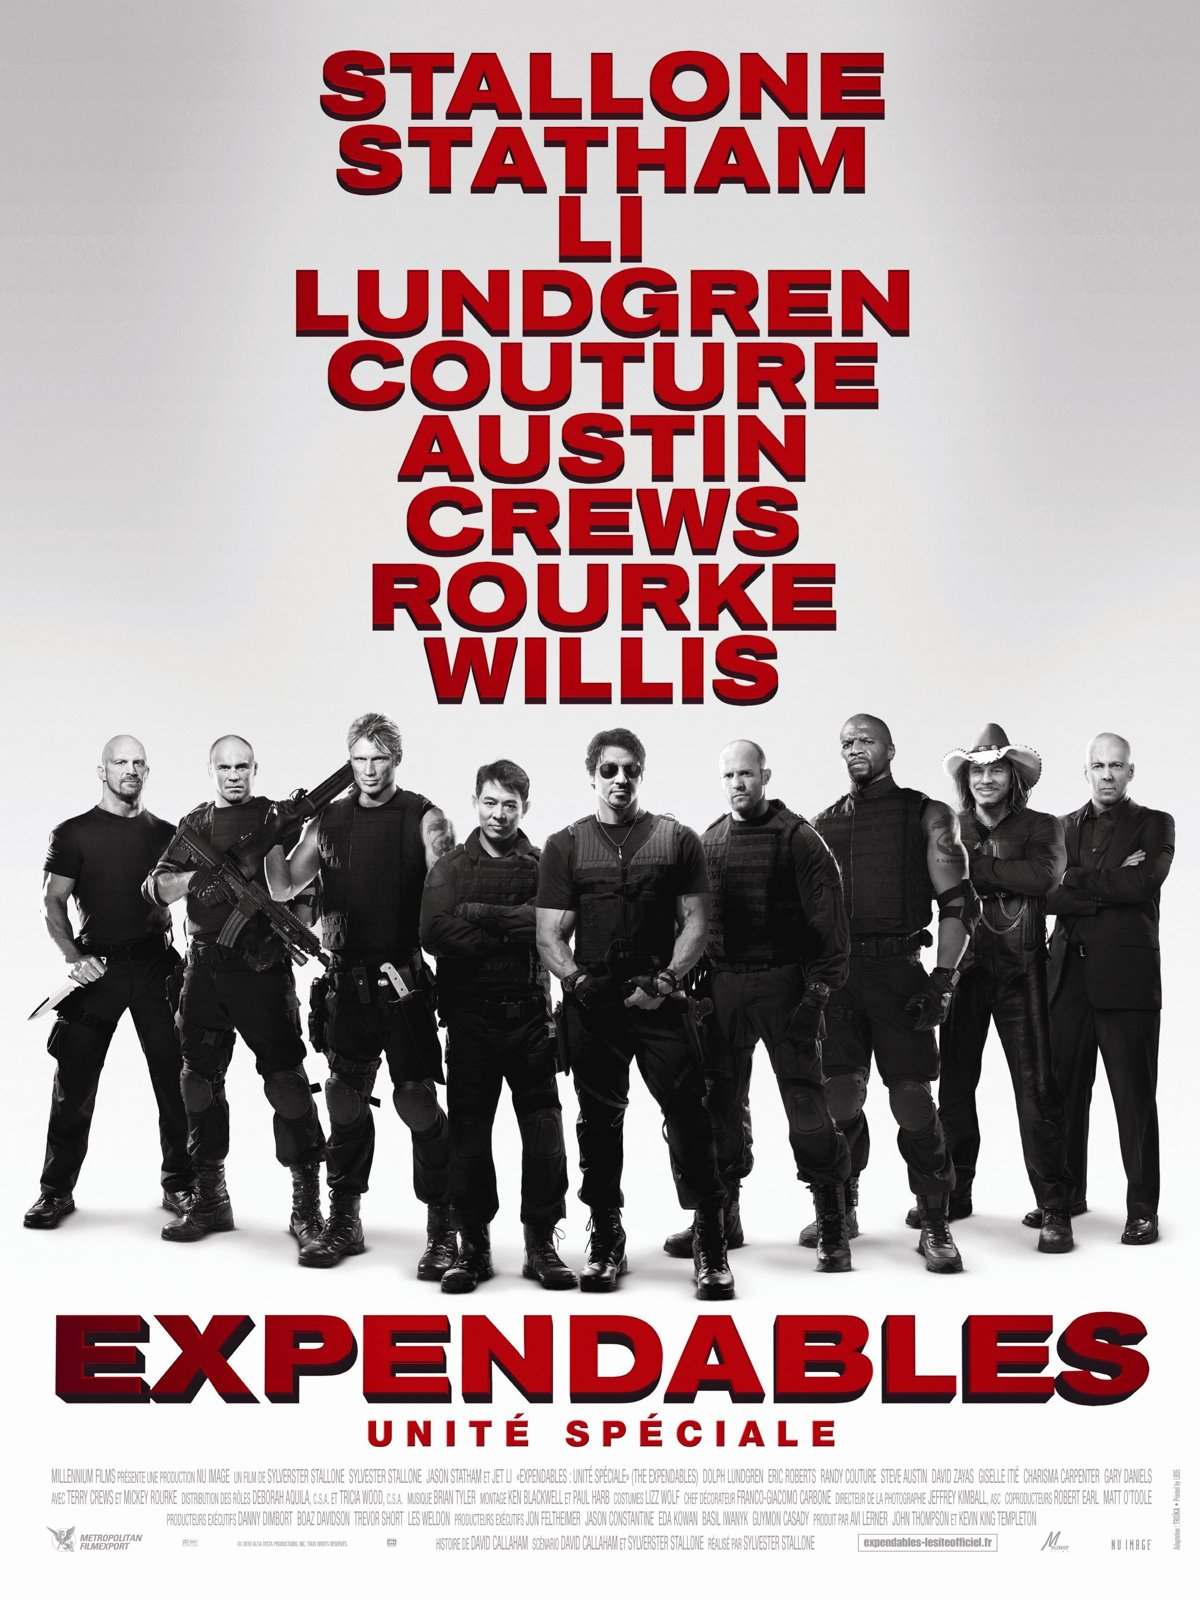 http://2.bp.blogspot.com/_95CwhVxJULc/TSYyT2r-BhI/AAAAAAAAHeM/8v9UMuUnuKI/s1600/The_Expendables_mejores_programas_tv_peliculas_movie_Series_2010_tierra_freak_tierrafreak.com.ar.jpg